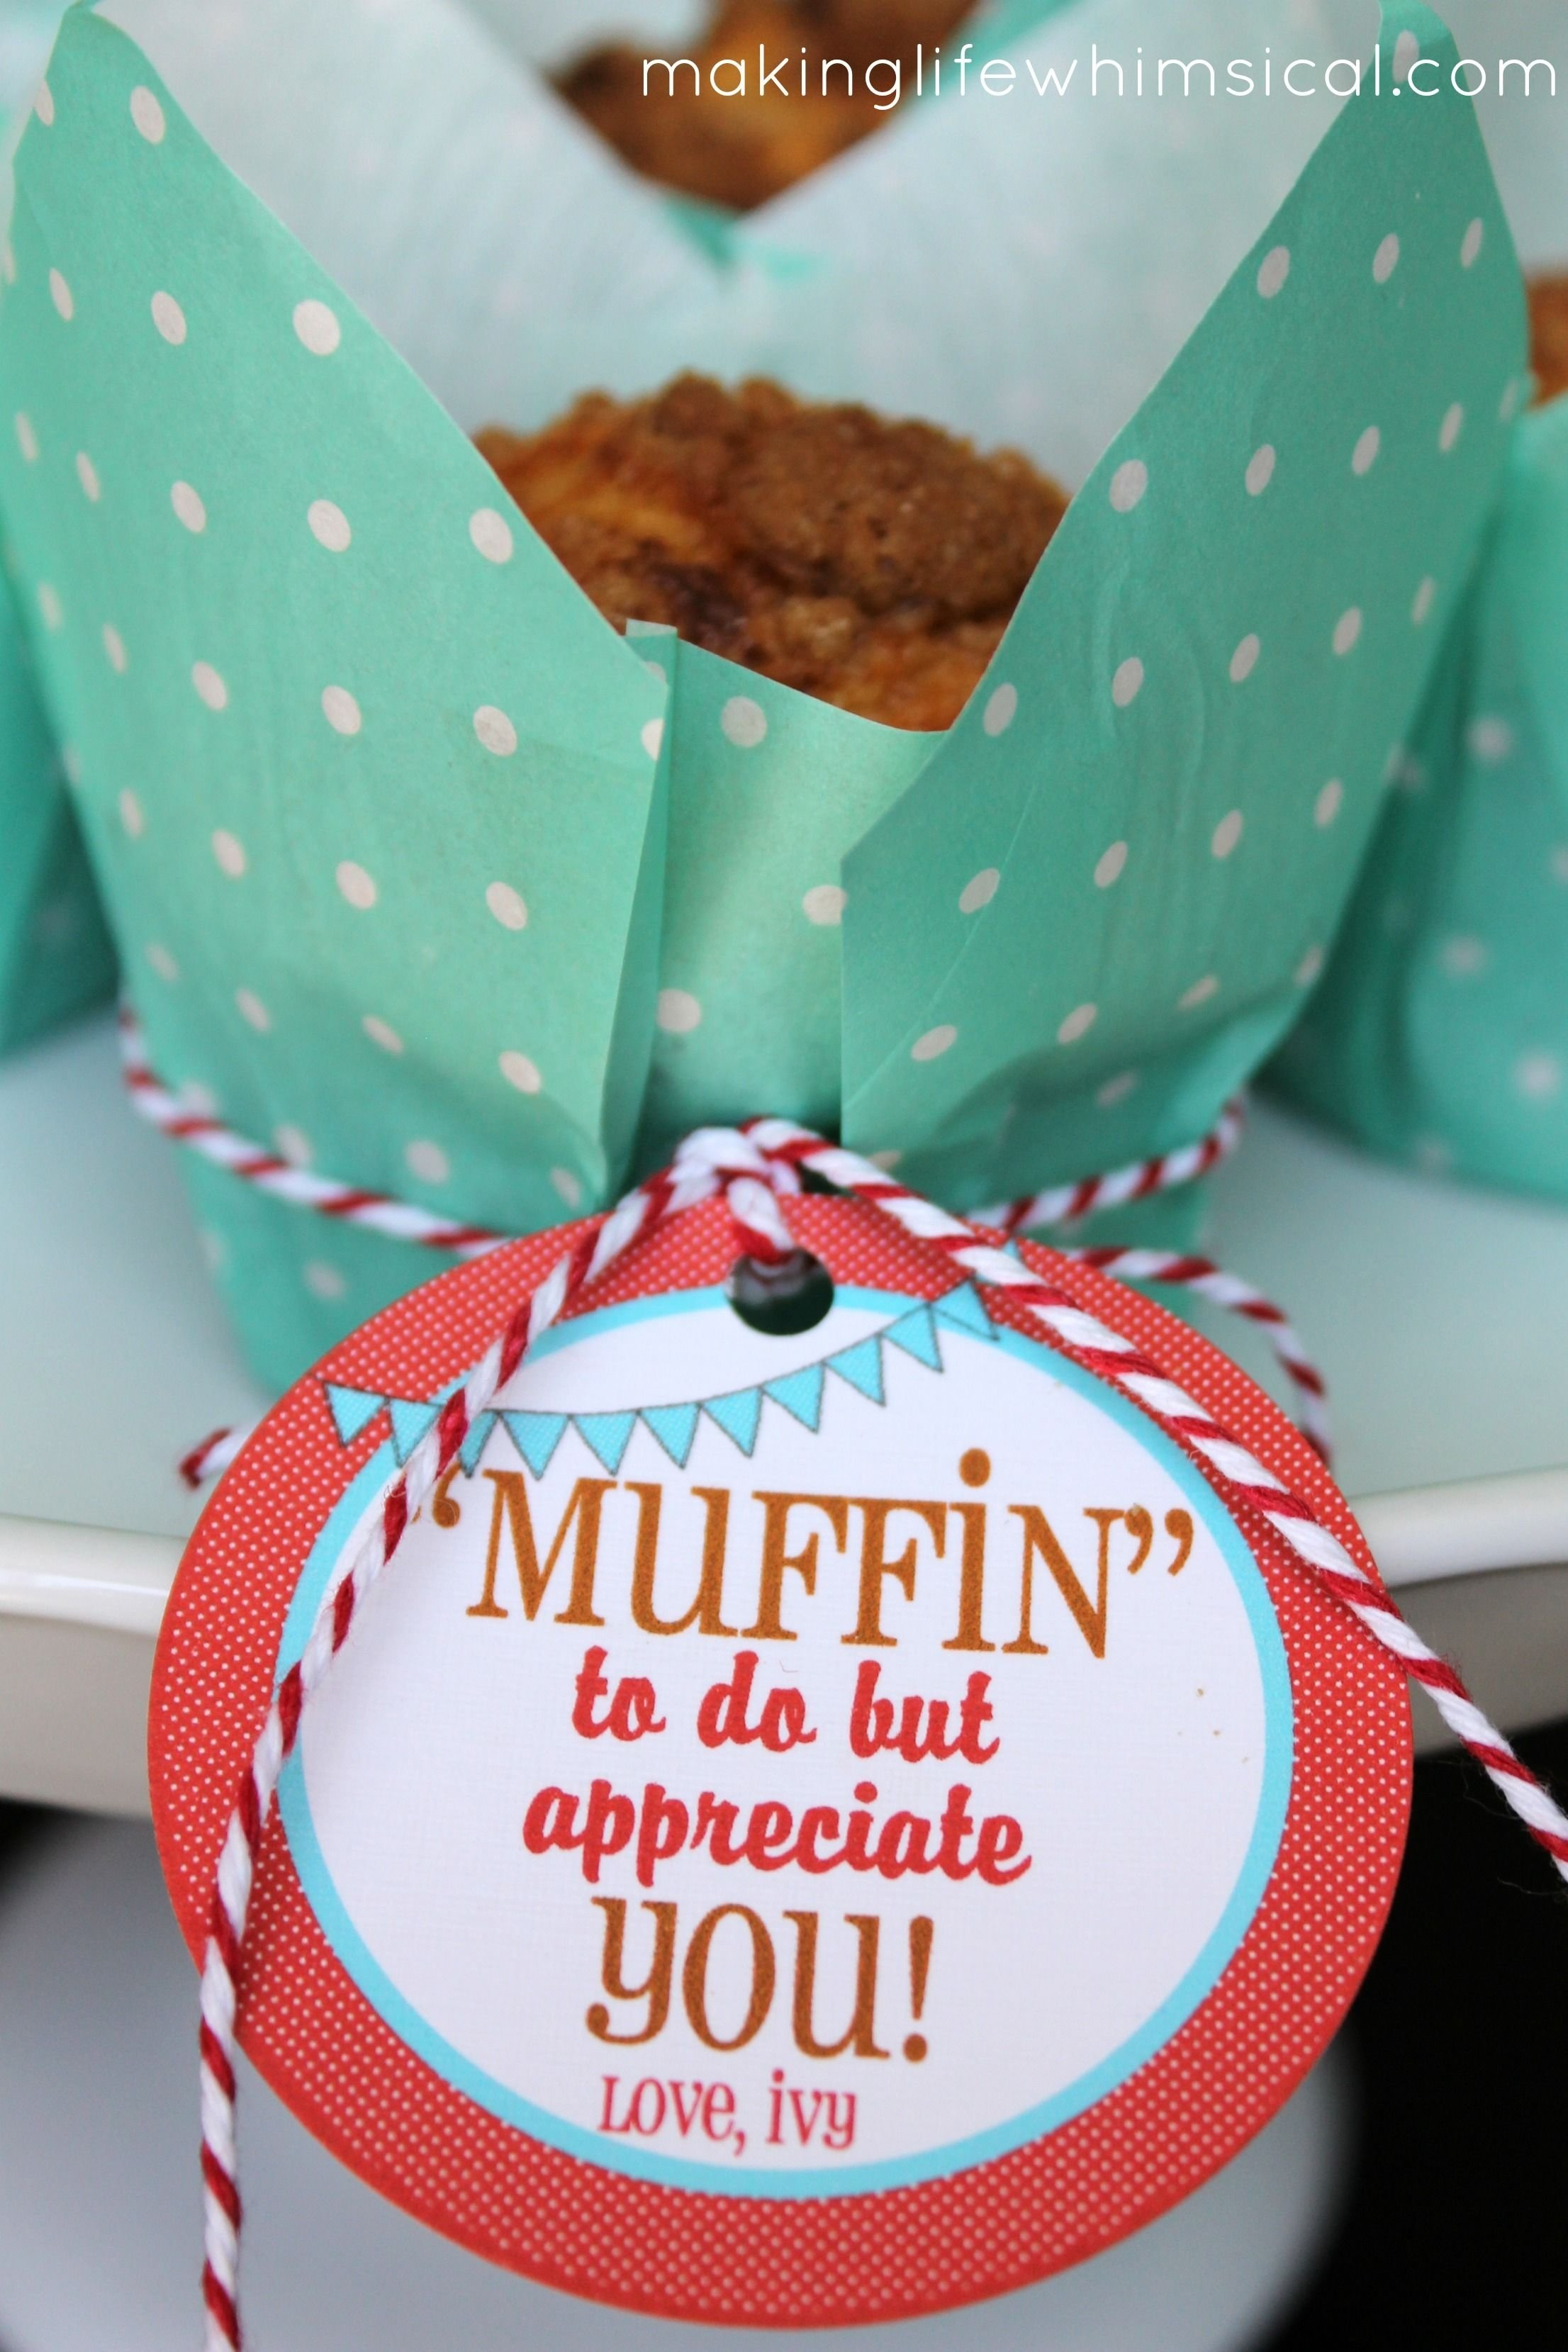 10 Most Recommended Cute Ideas For Teacher Appreciation Week muffin to do but appreciate you cute for teacher appreciation week 2020